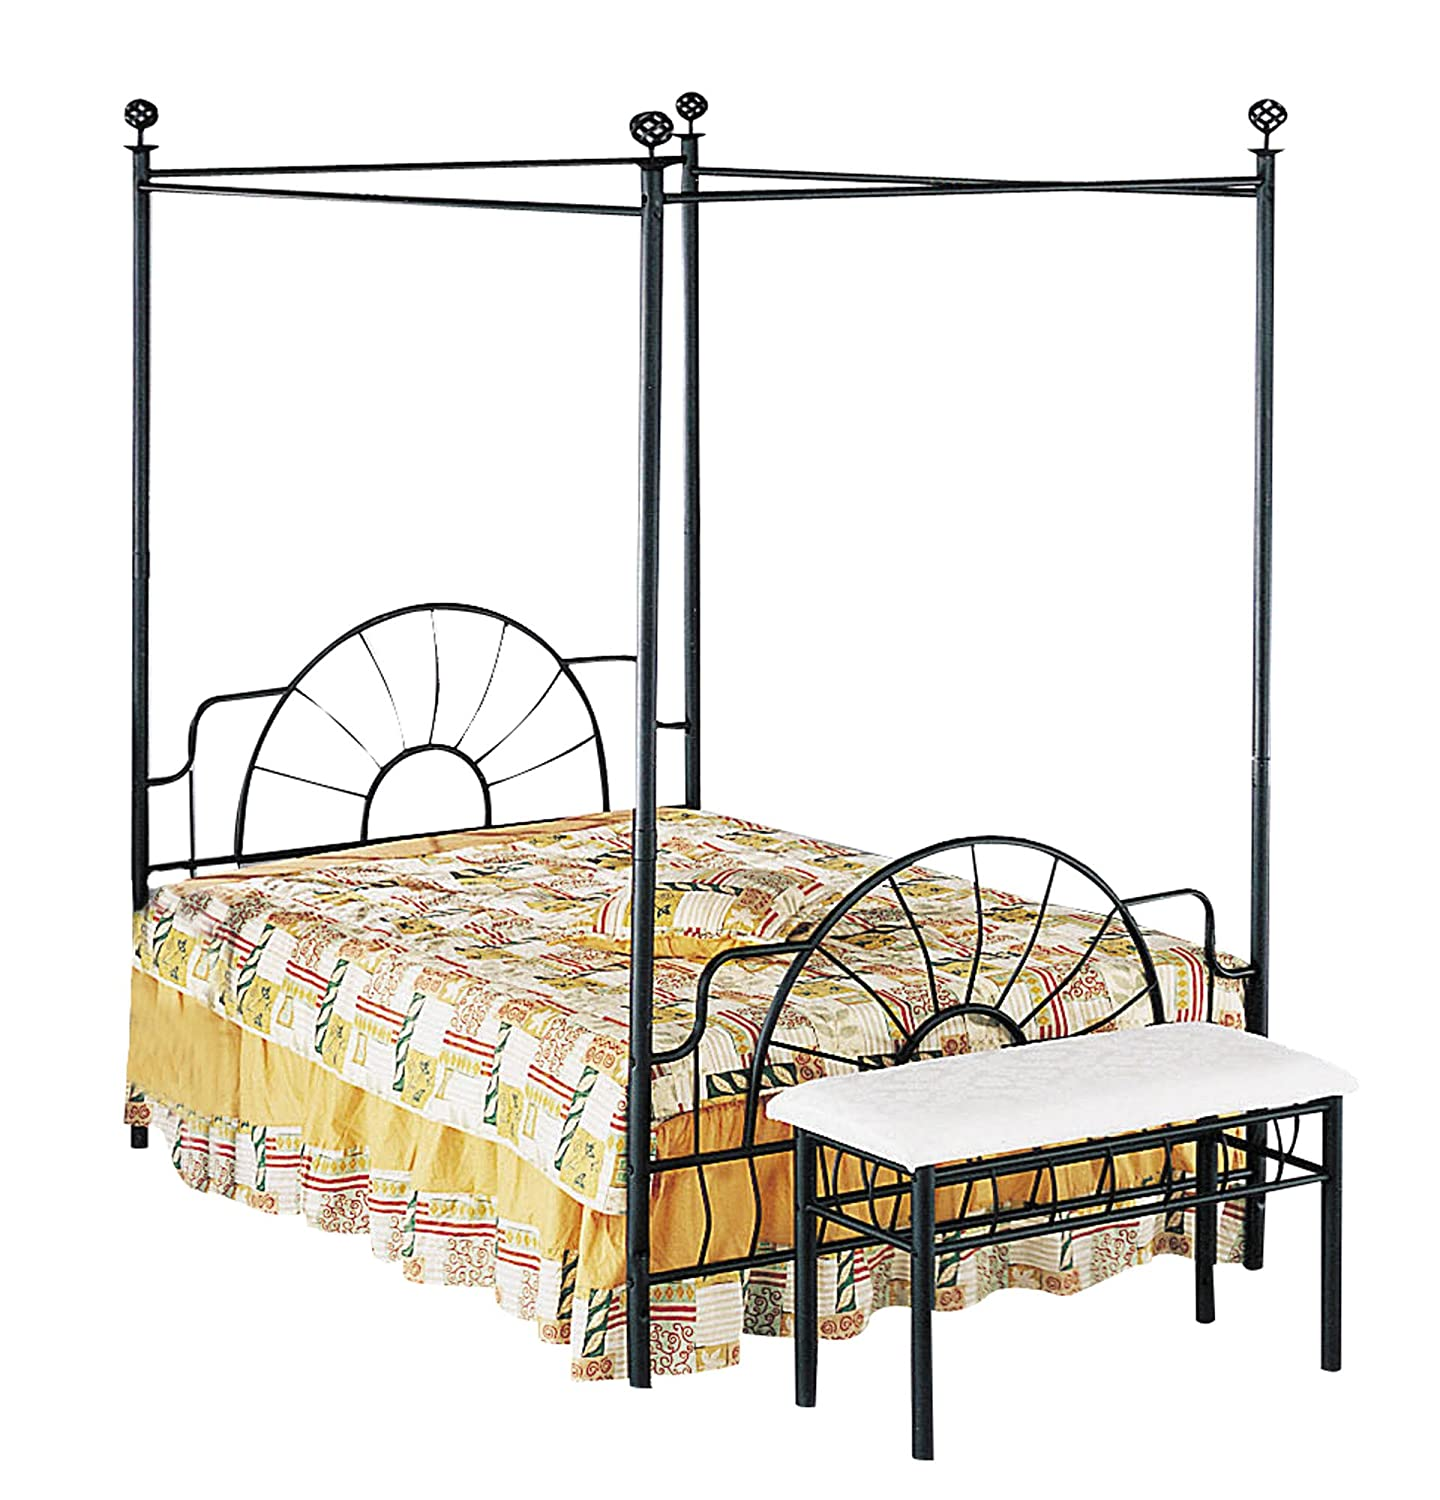 Amazon.com ACME 02084Q Sunburst Queen Canopy Bed HB/FB Black Finish Kitchen u0026 Dining  sc 1 st  Amazon.com & Amazon.com: ACME 02084Q Sunburst Queen Canopy Bed HB/FB Black ...